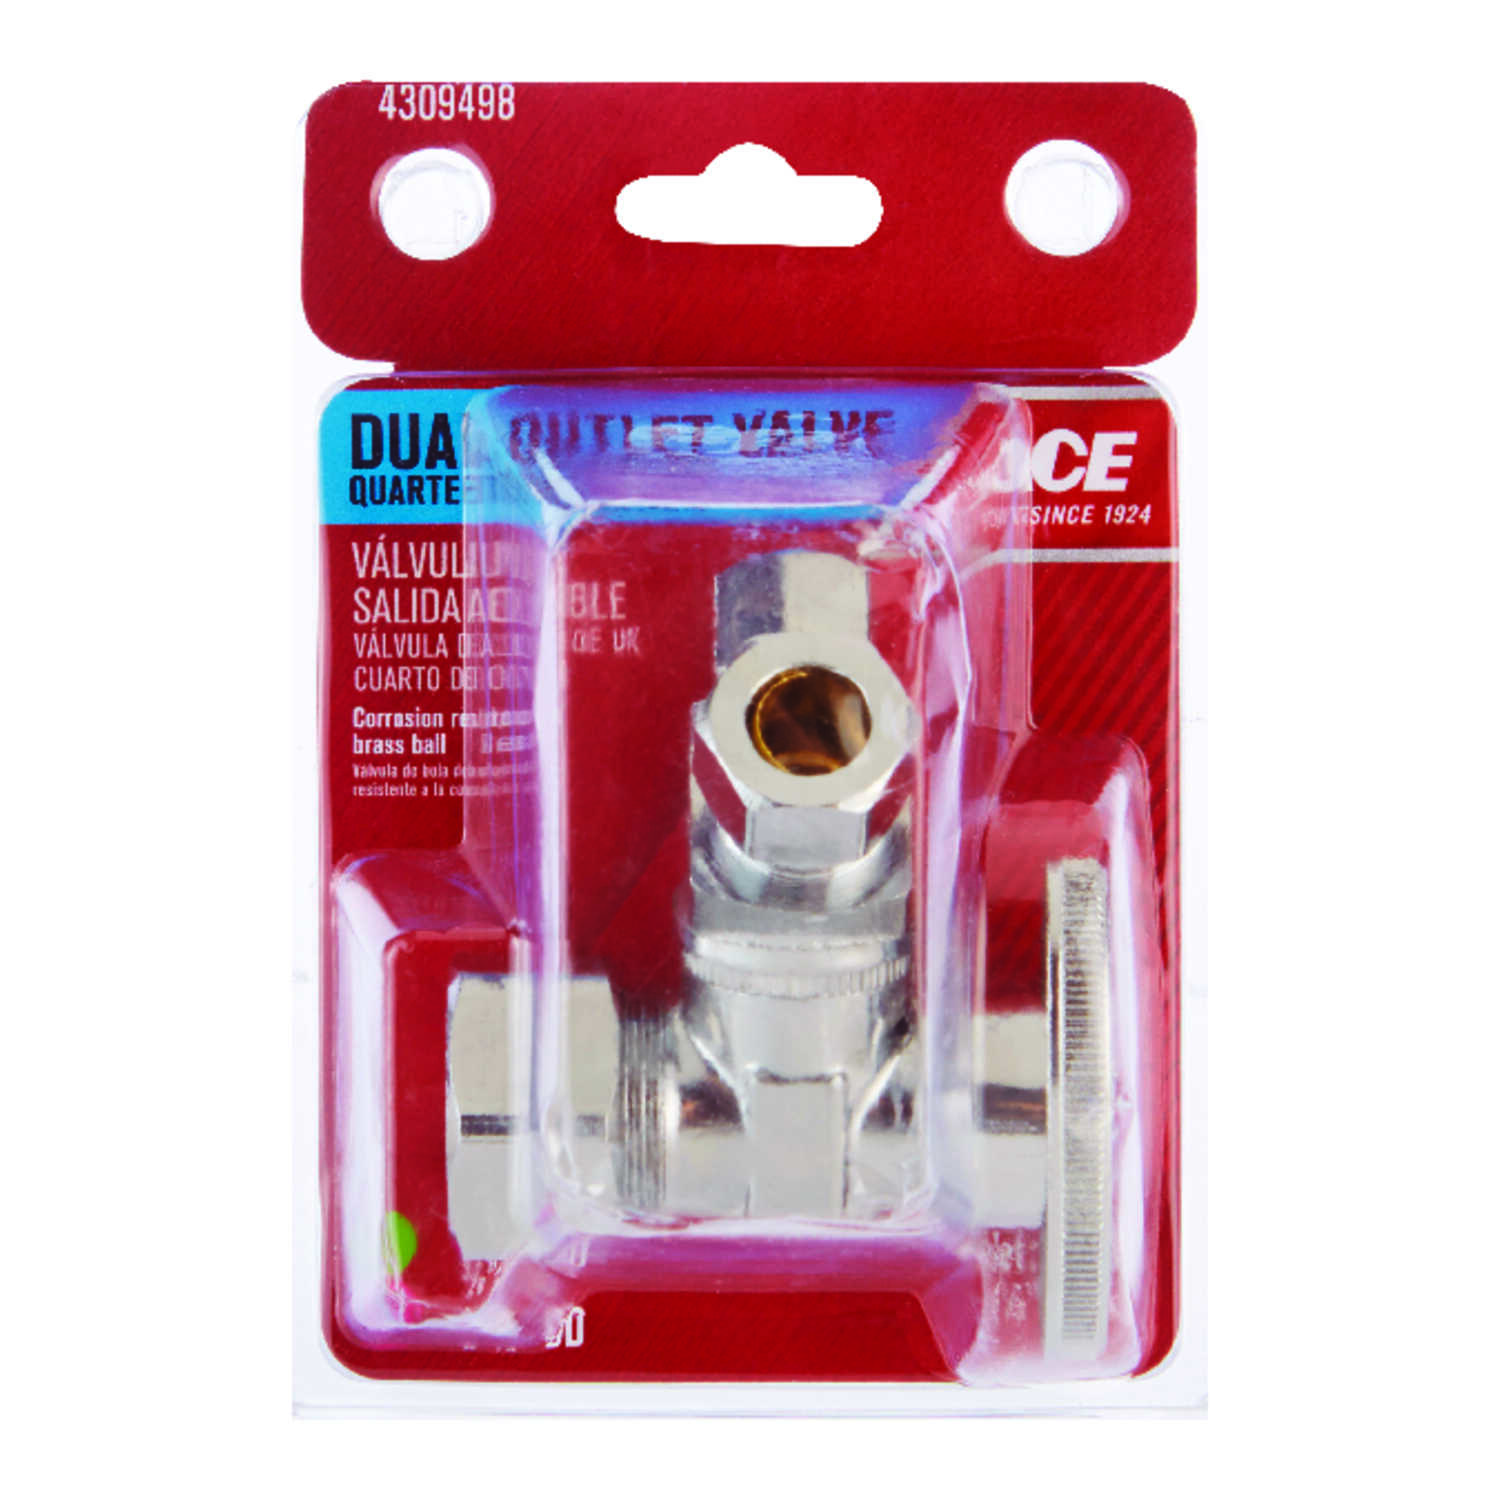 Ace  5/8 in.  x 3/8 x 1/4 in.  Ball  Dual Shut-Off Valve  Brass